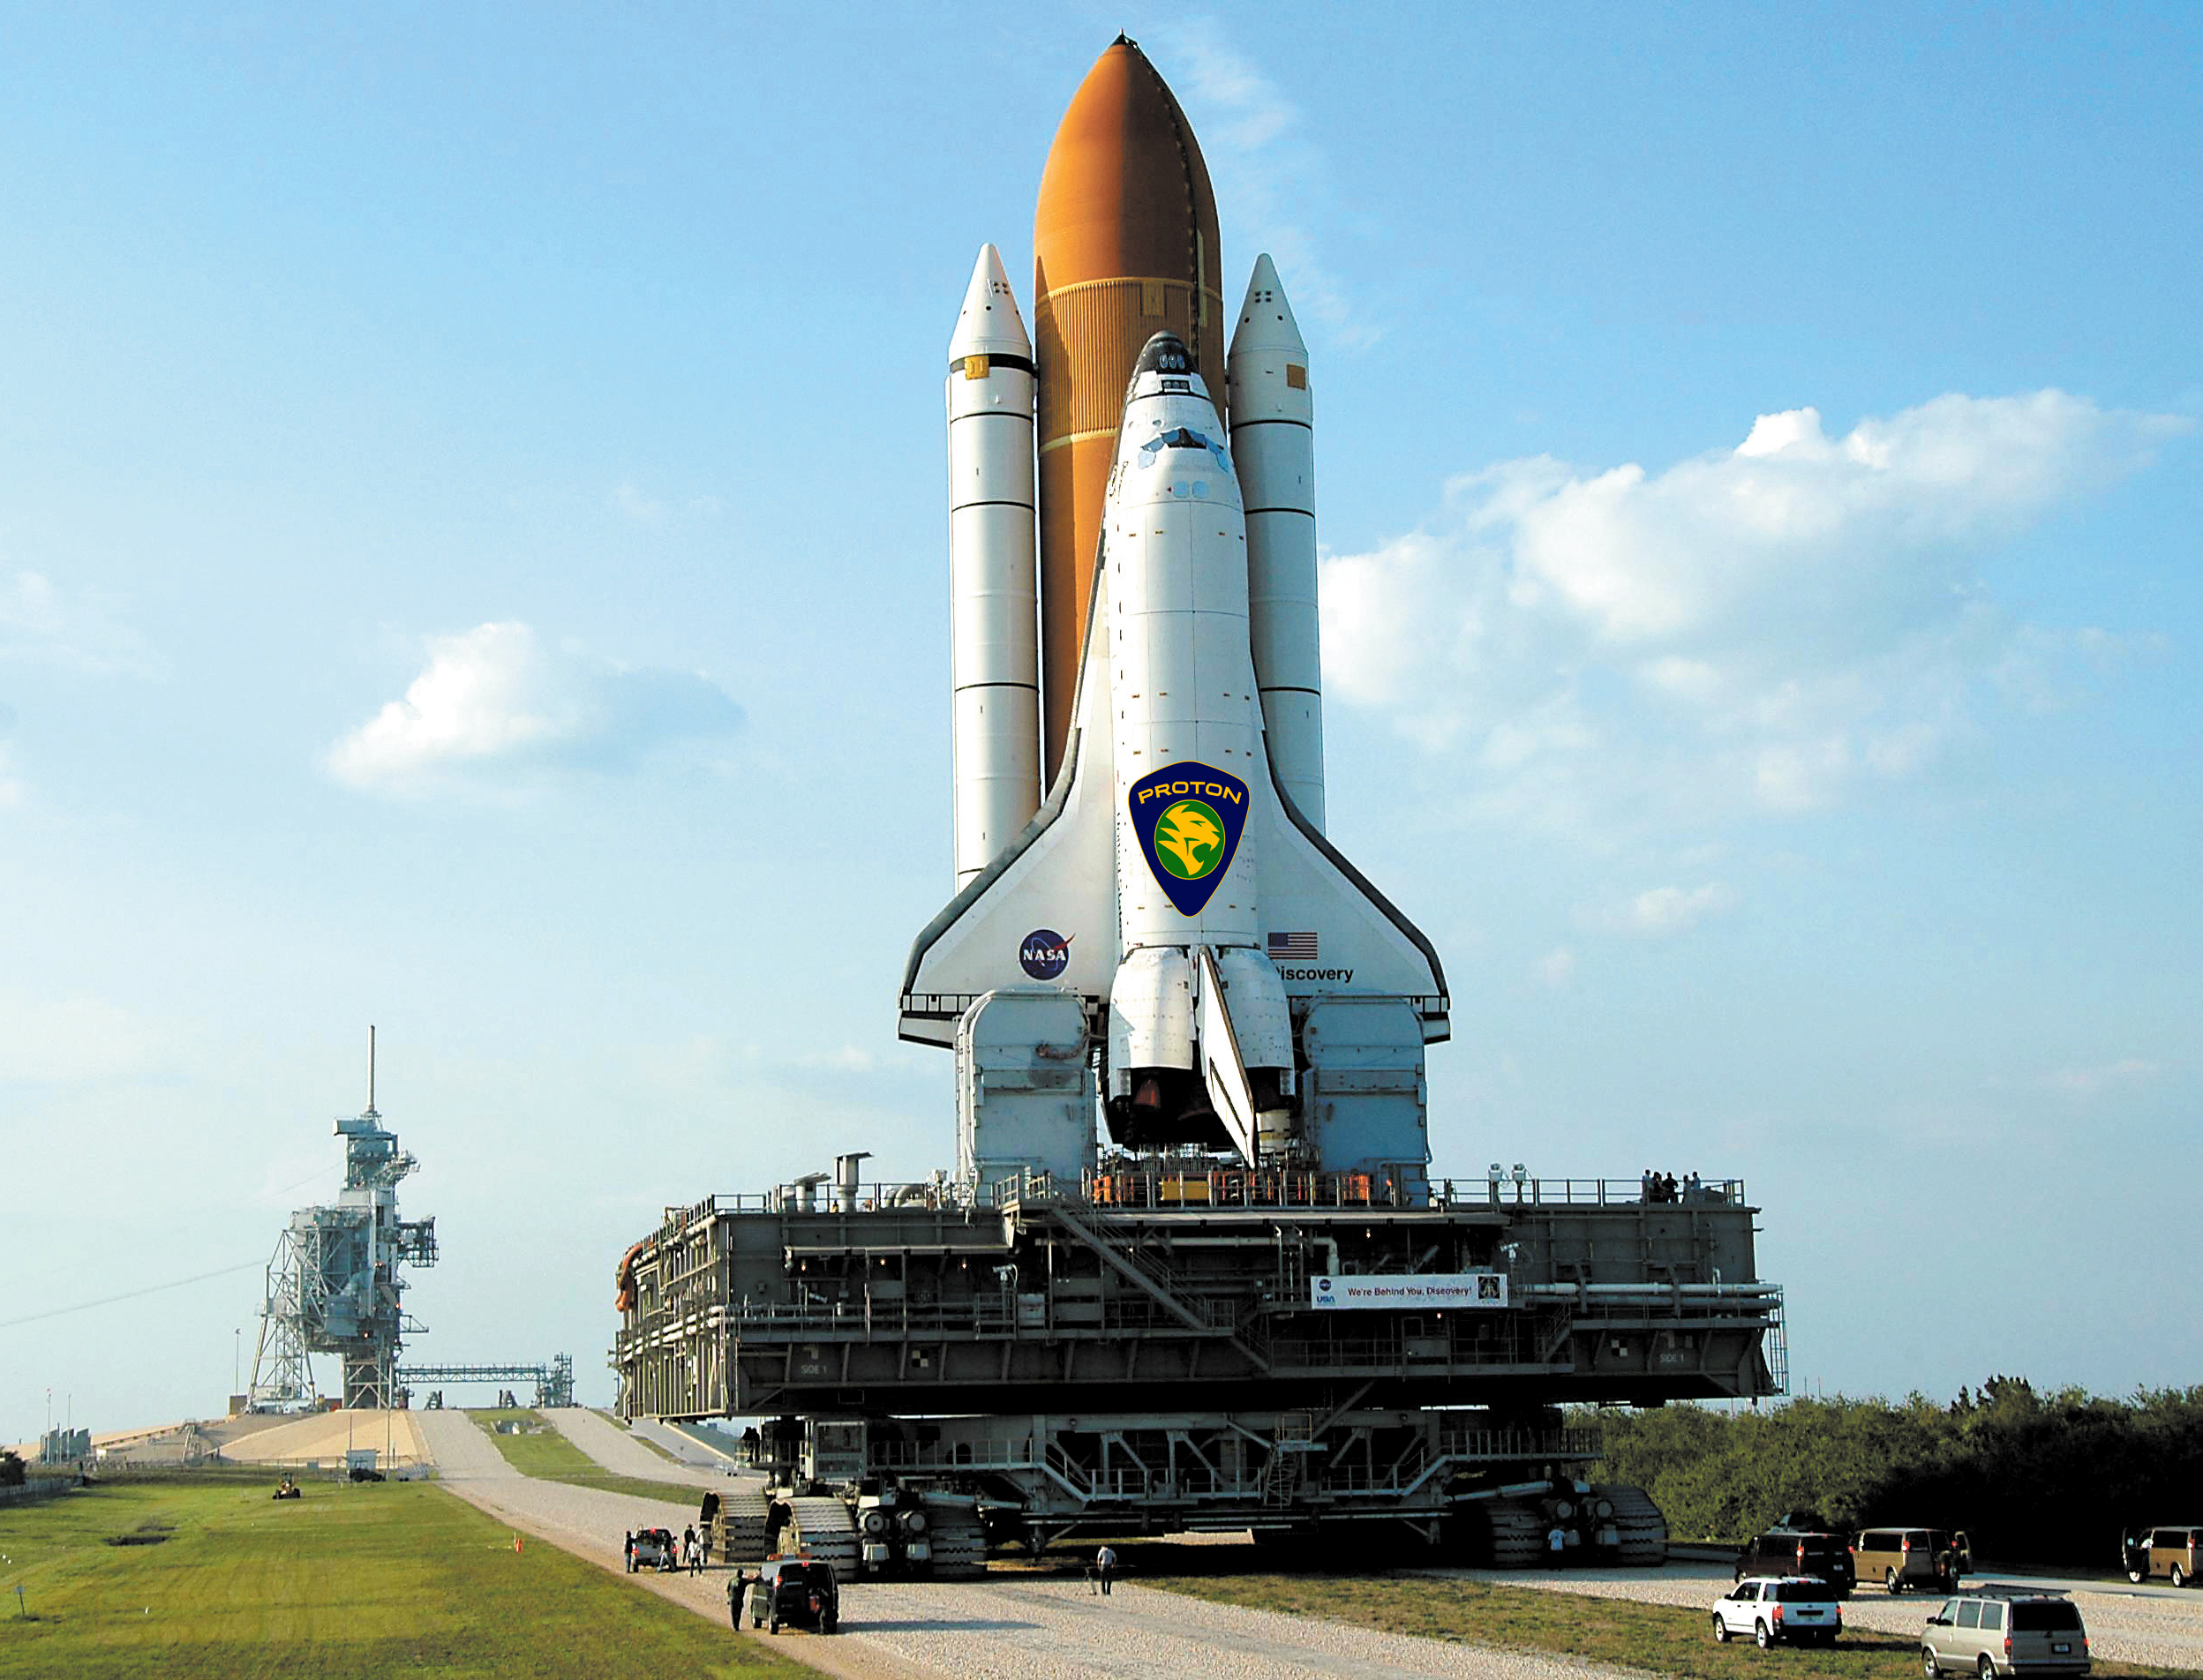 Space Shuttle Discovery approaches the ramp on its rollout to Launch Pad 39B at the Kennedy Space Center Friday. The 4.2-mile journey from the Vehicle Assembly Building to the pad takes approximately 8 hours. Discovery is scheduled to launch July 1.